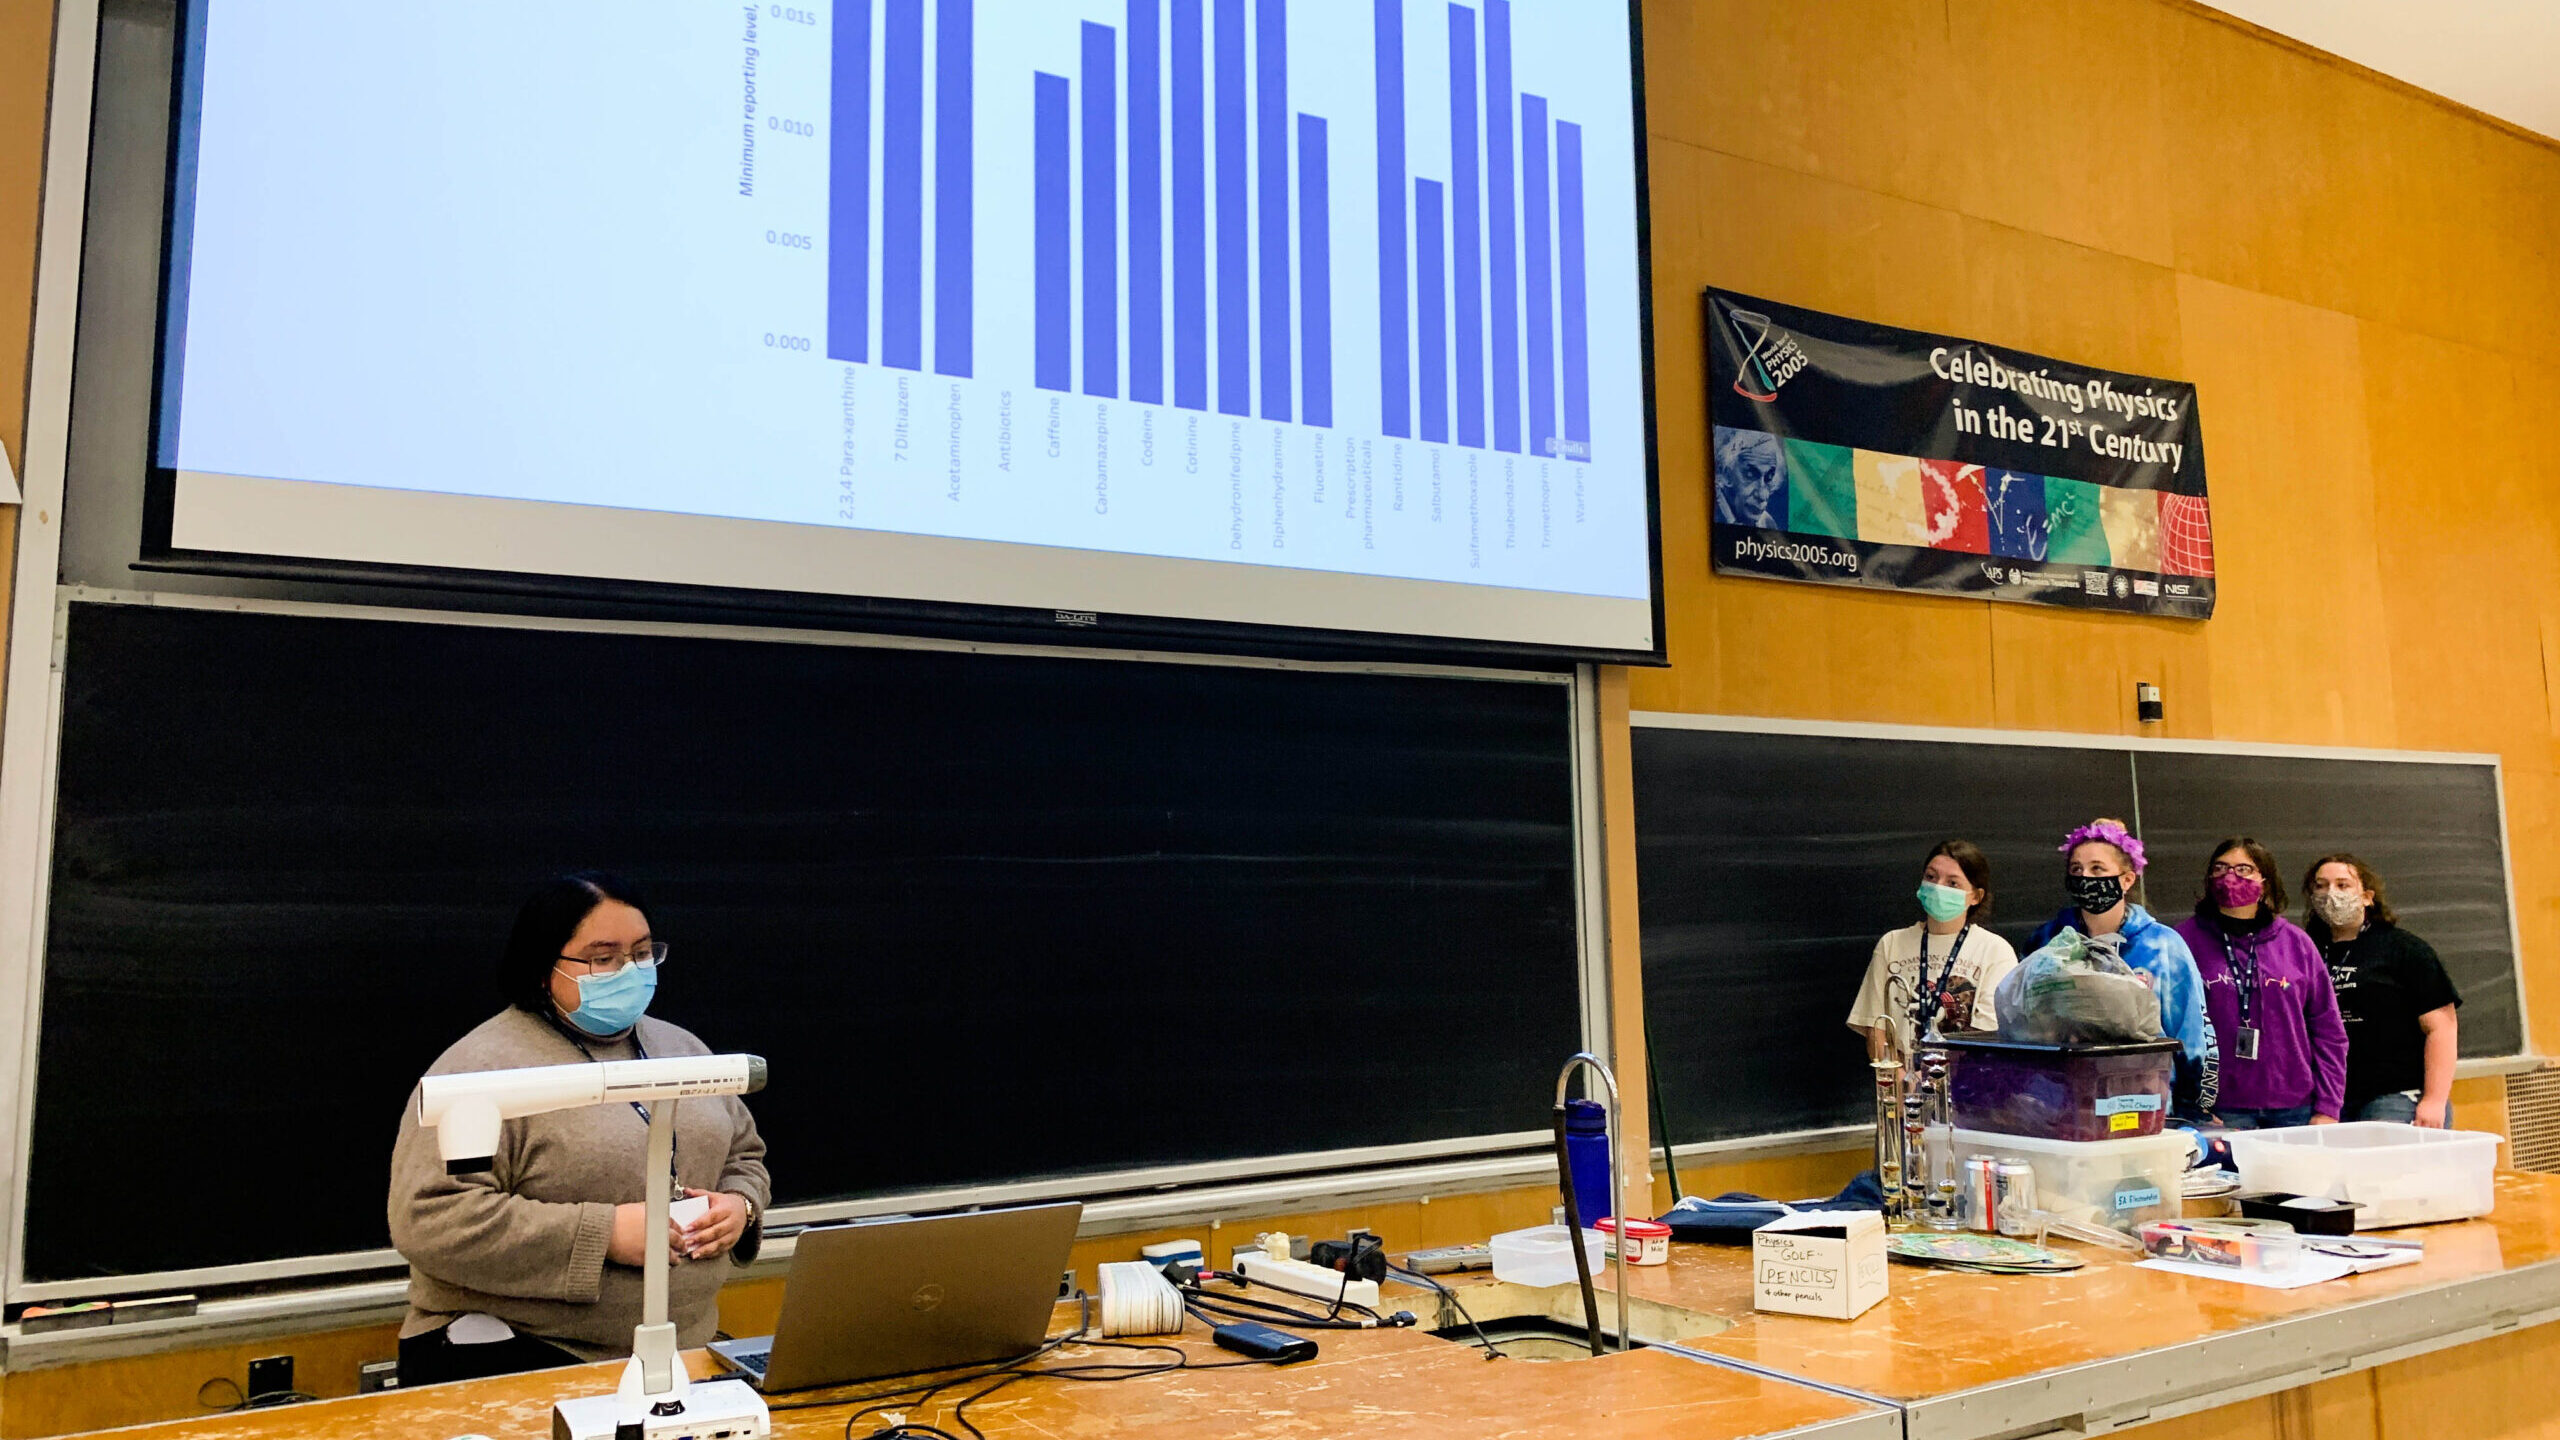 One student stands behind a table with laptop in a classroom and presents data. Four group members stand off to the right of the presenter.